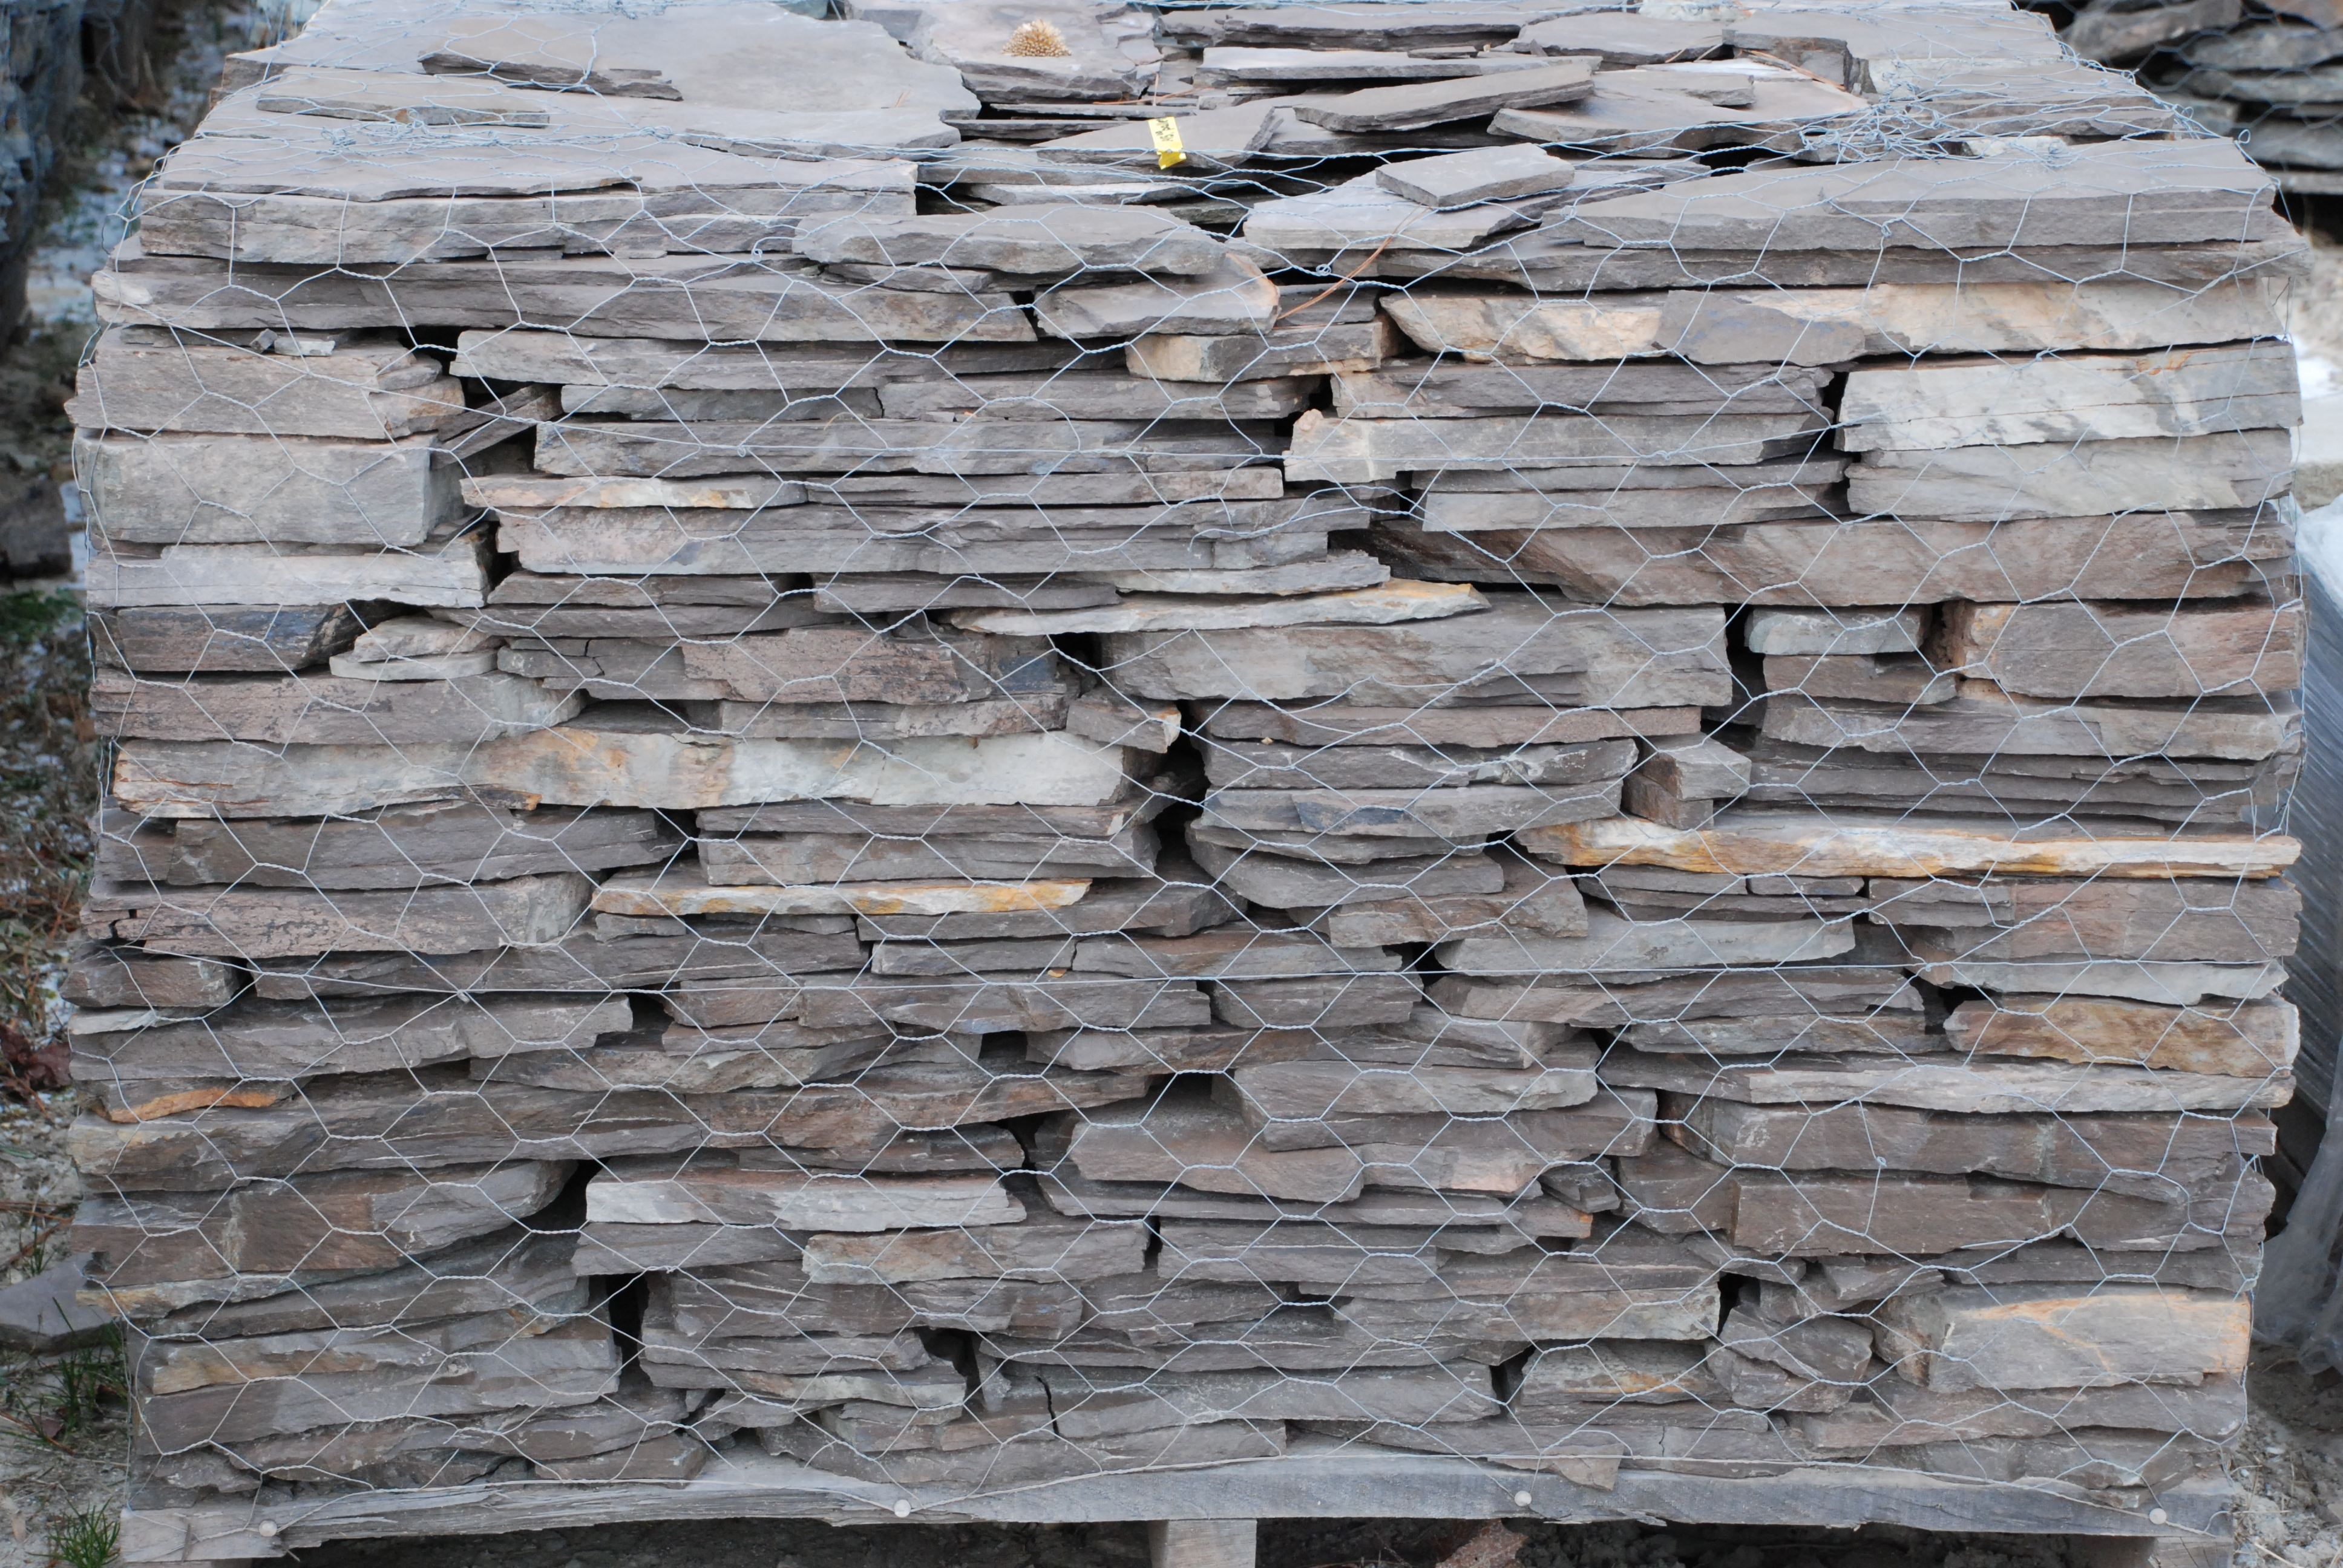 Landscaping stone wall stone for landscaping or to build stone wall at charlies antiques in williamsburg va amipublicfo Image collections